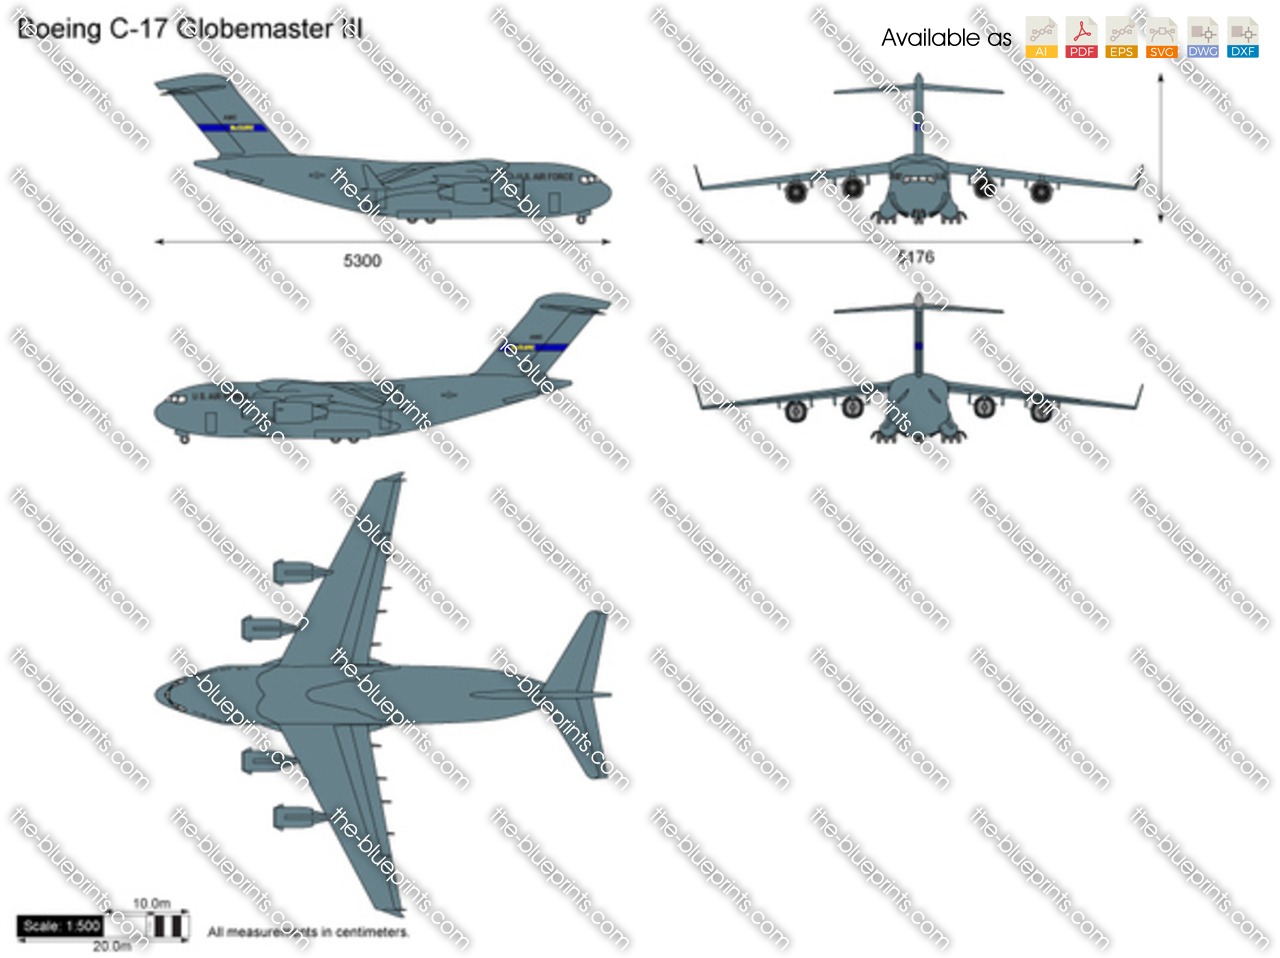 Stick Figure People Activity Themed Svg further M1117 guardian apc as well Yamaha ybr 250 further Stock Illustration Buy Furniture Self Service Store Cliparts How To Test View Check Out Price Tag Information Locate Image49076623 also Start And Finish Lines. on show car illustrations